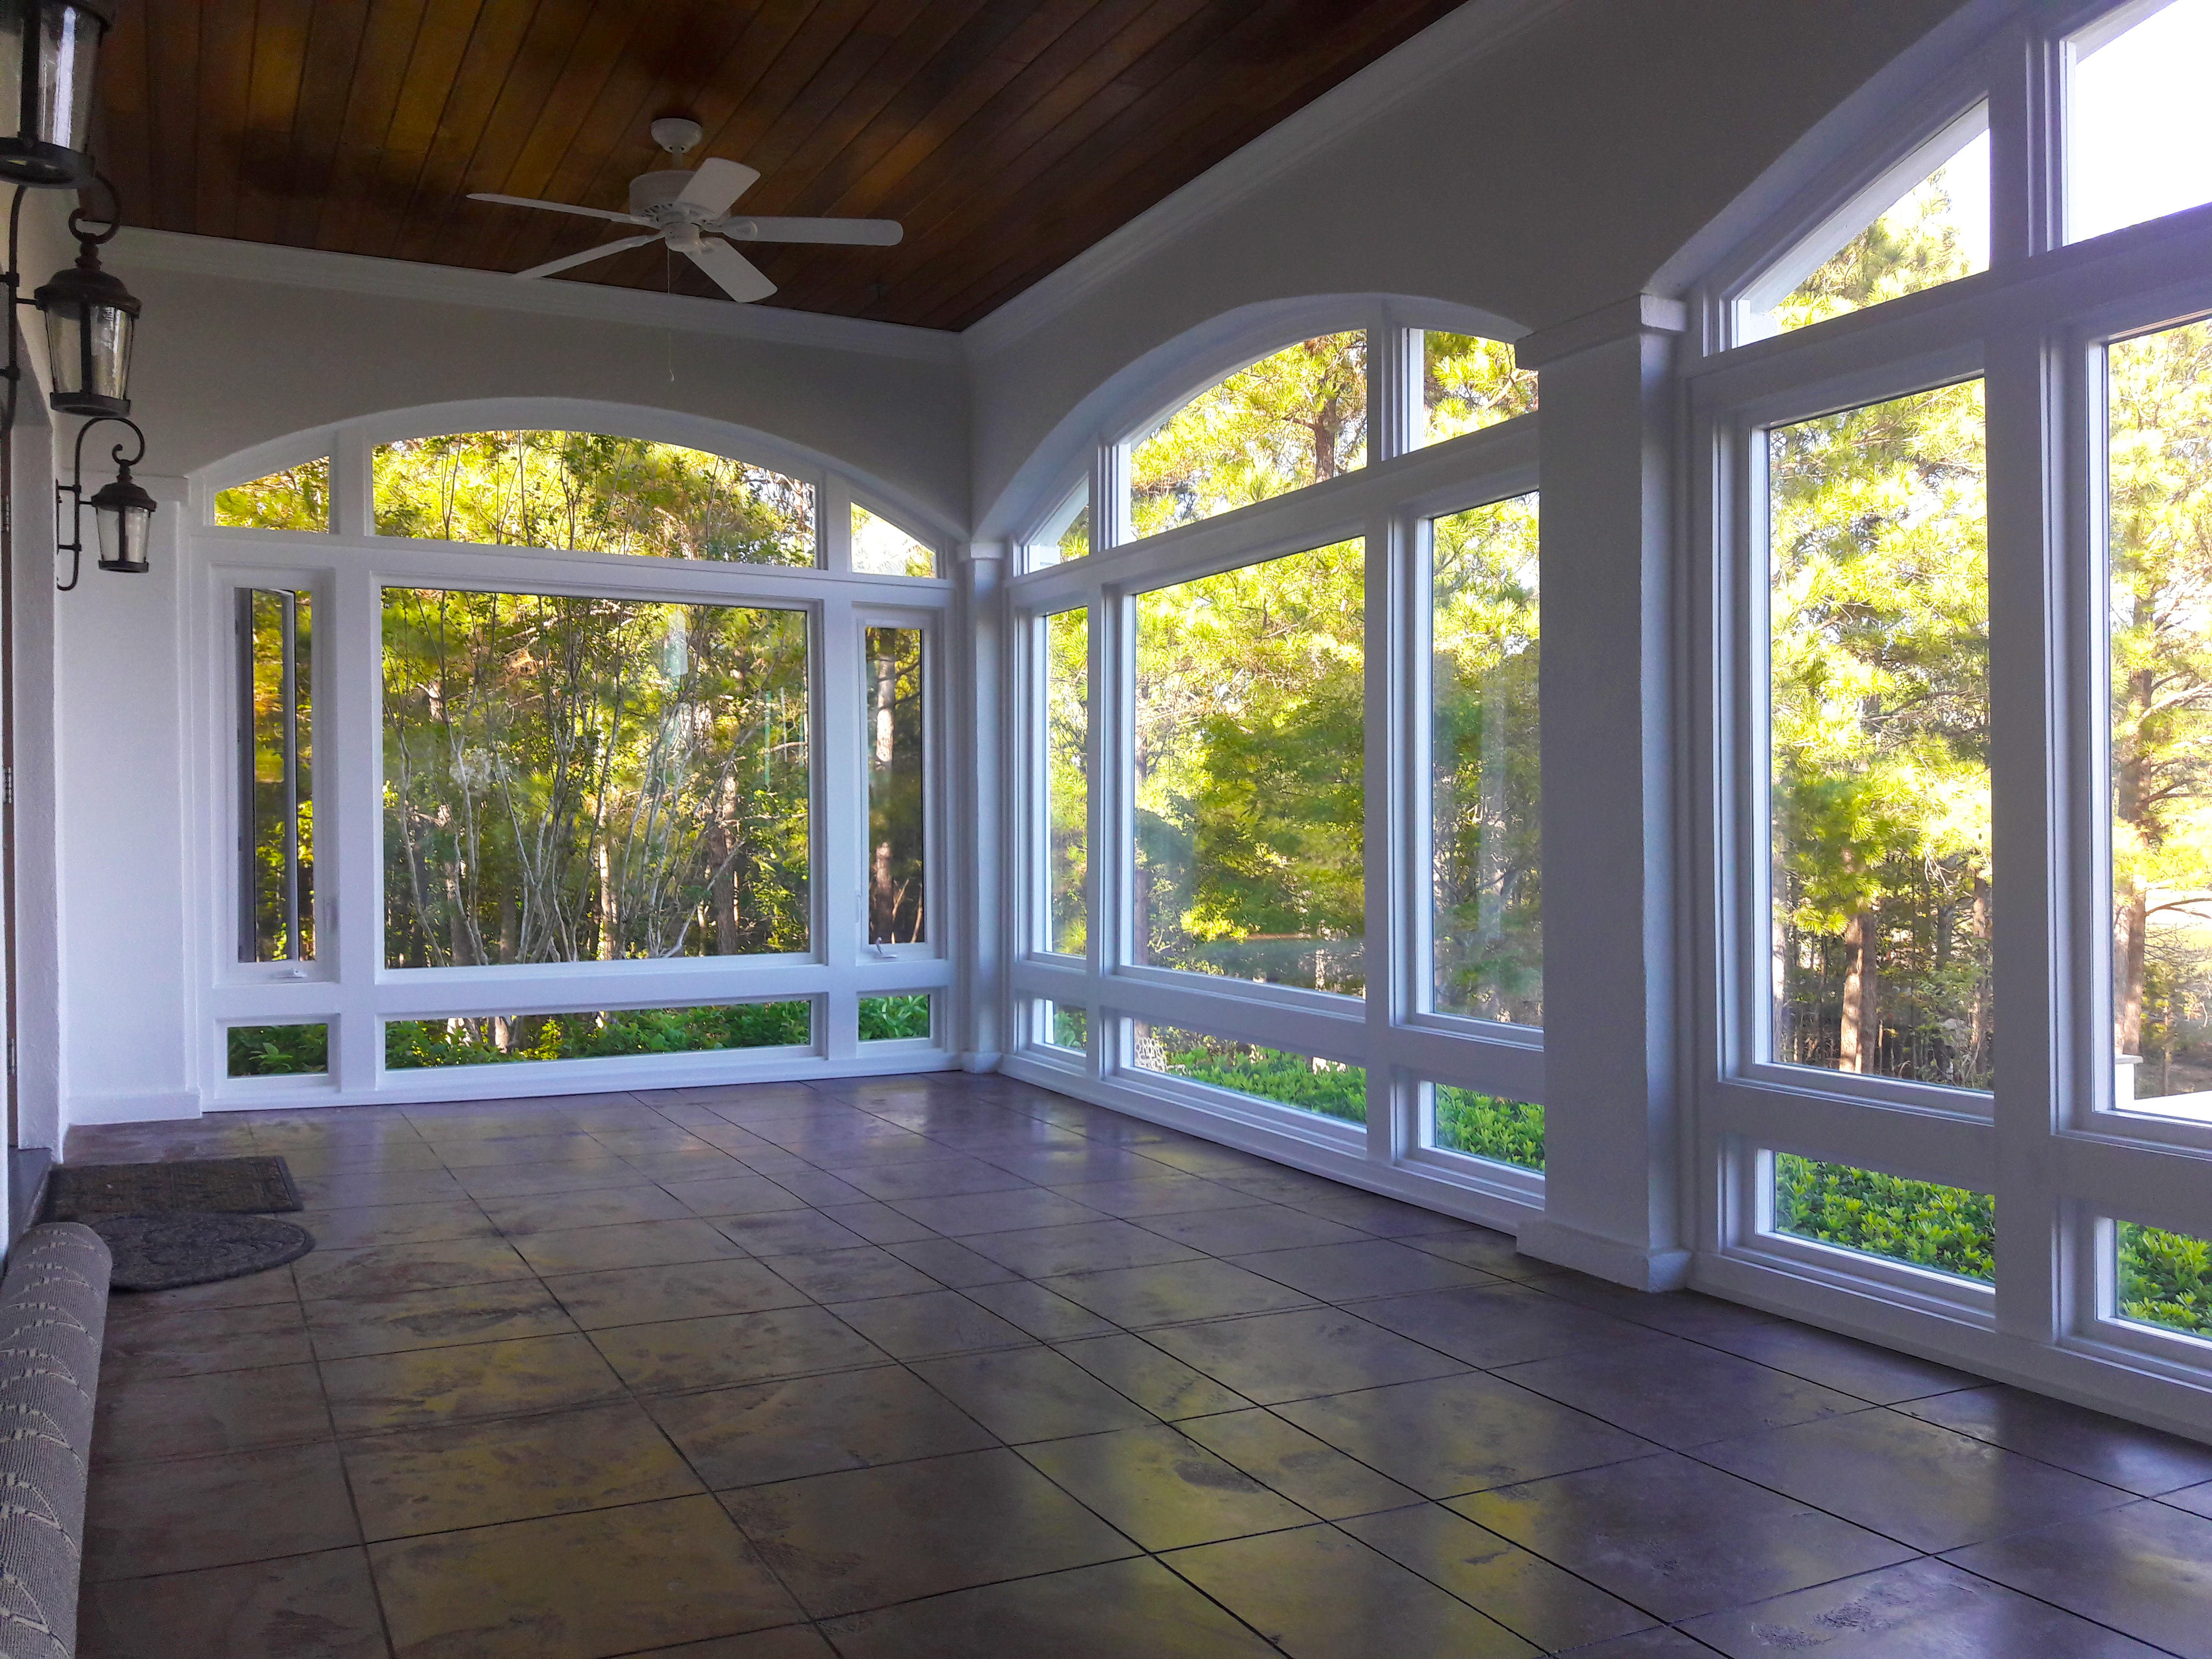 Southern Exposure Sunrooms image 4